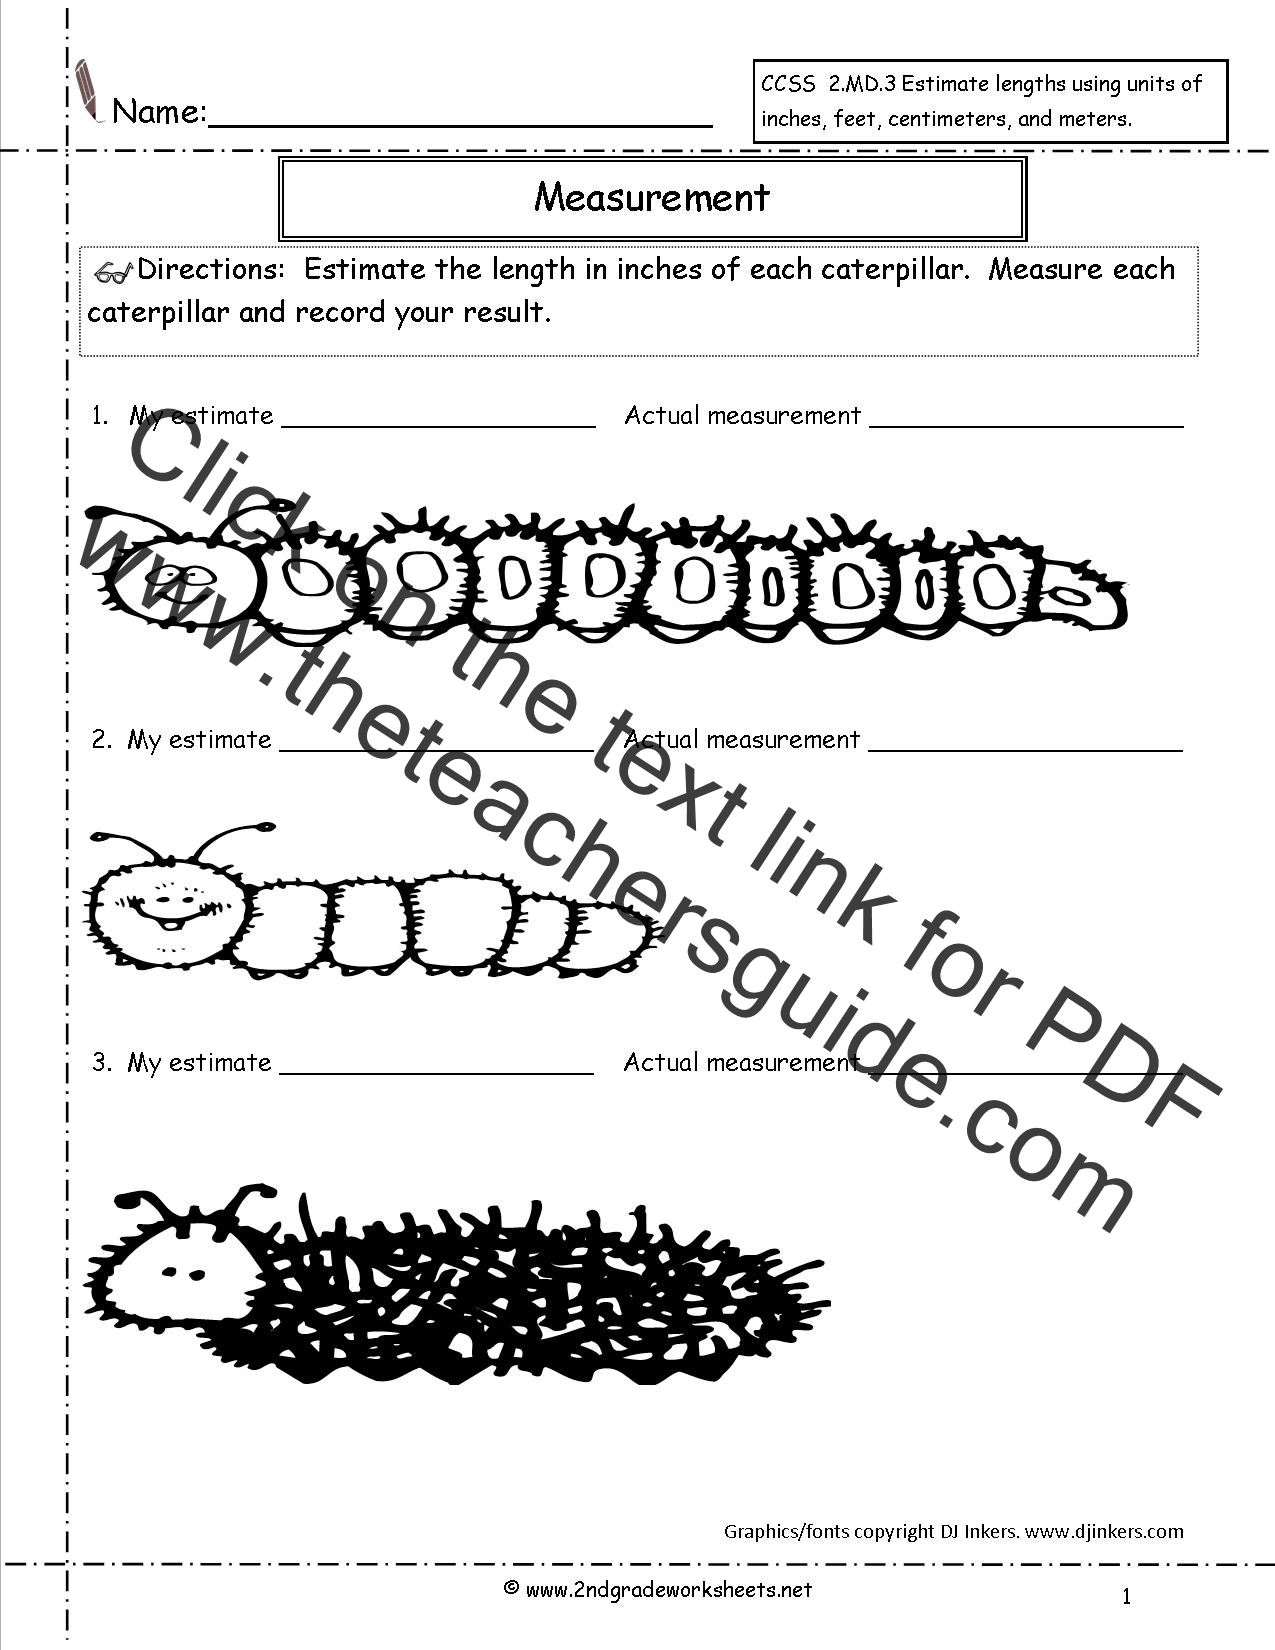 Uncategorized Second Grade Math Worksheets Common Core ccss 2 md 3 worksheets estimating and measuring lengths estimate measure worksheet common core